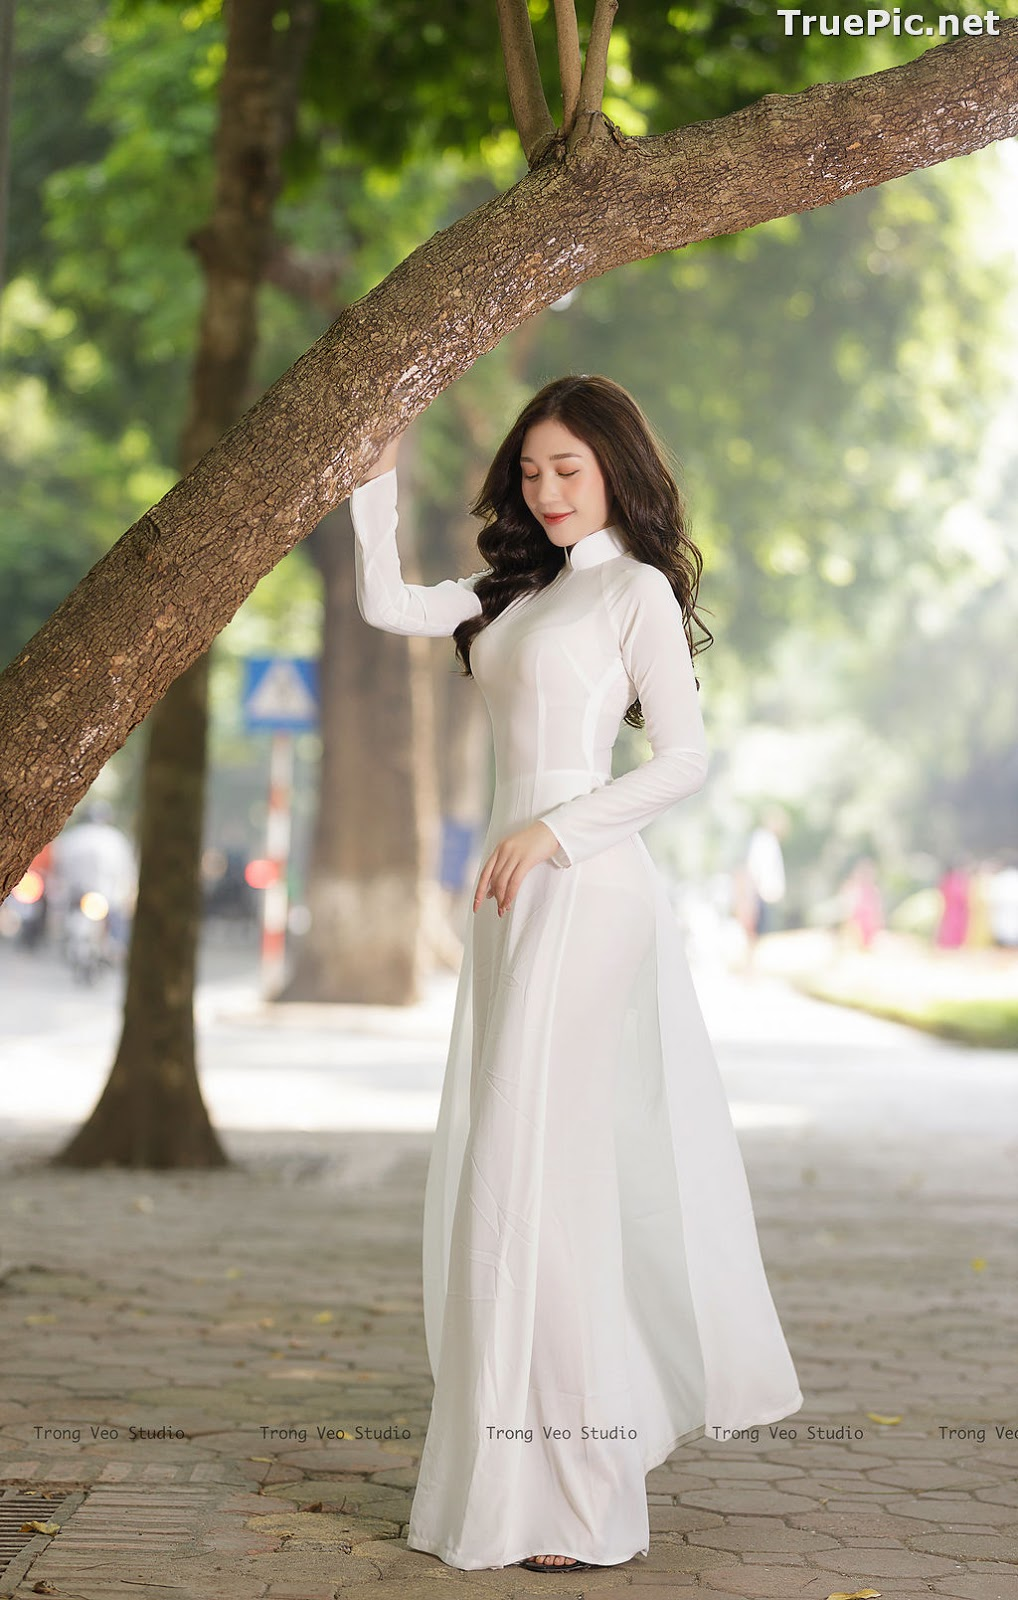 Image The Beauty of Vietnamese Girls with Traditional Dress (Ao Dai) #1 - TruePic.net - Picture-2